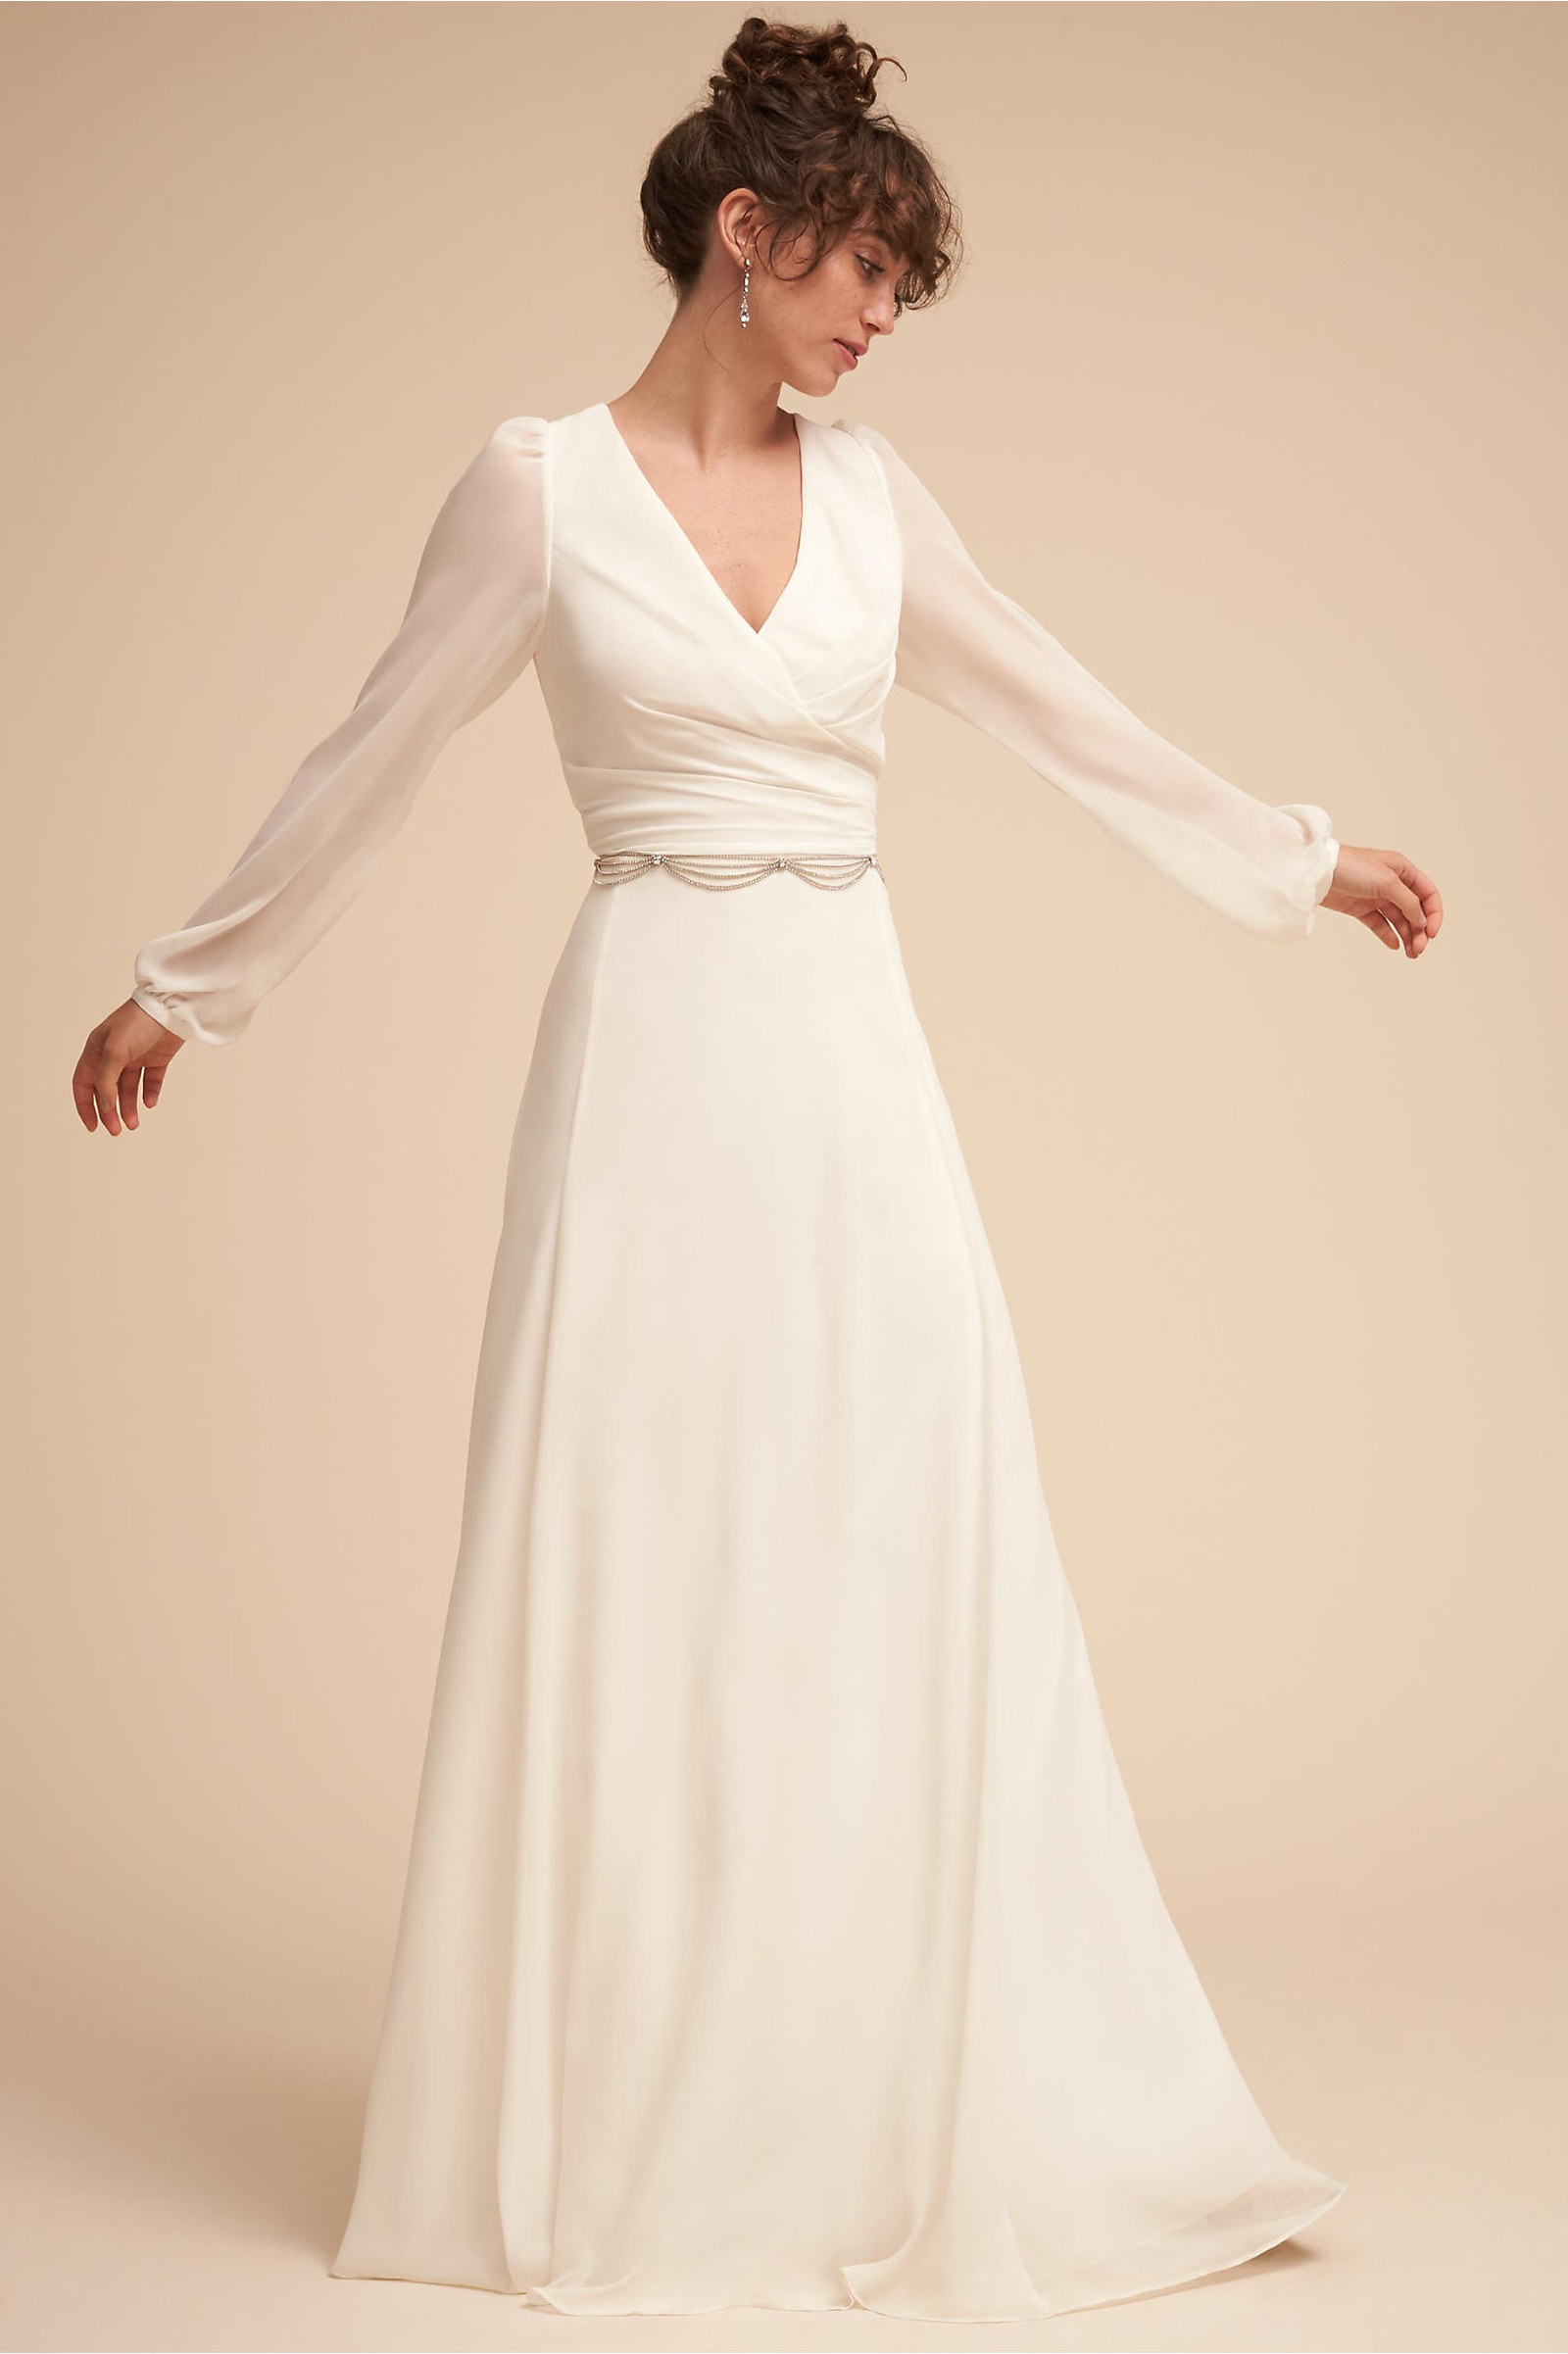 022f35a05f Bhldn  AKA the wedding shop where boring dresses are as unwelcome as vowels.